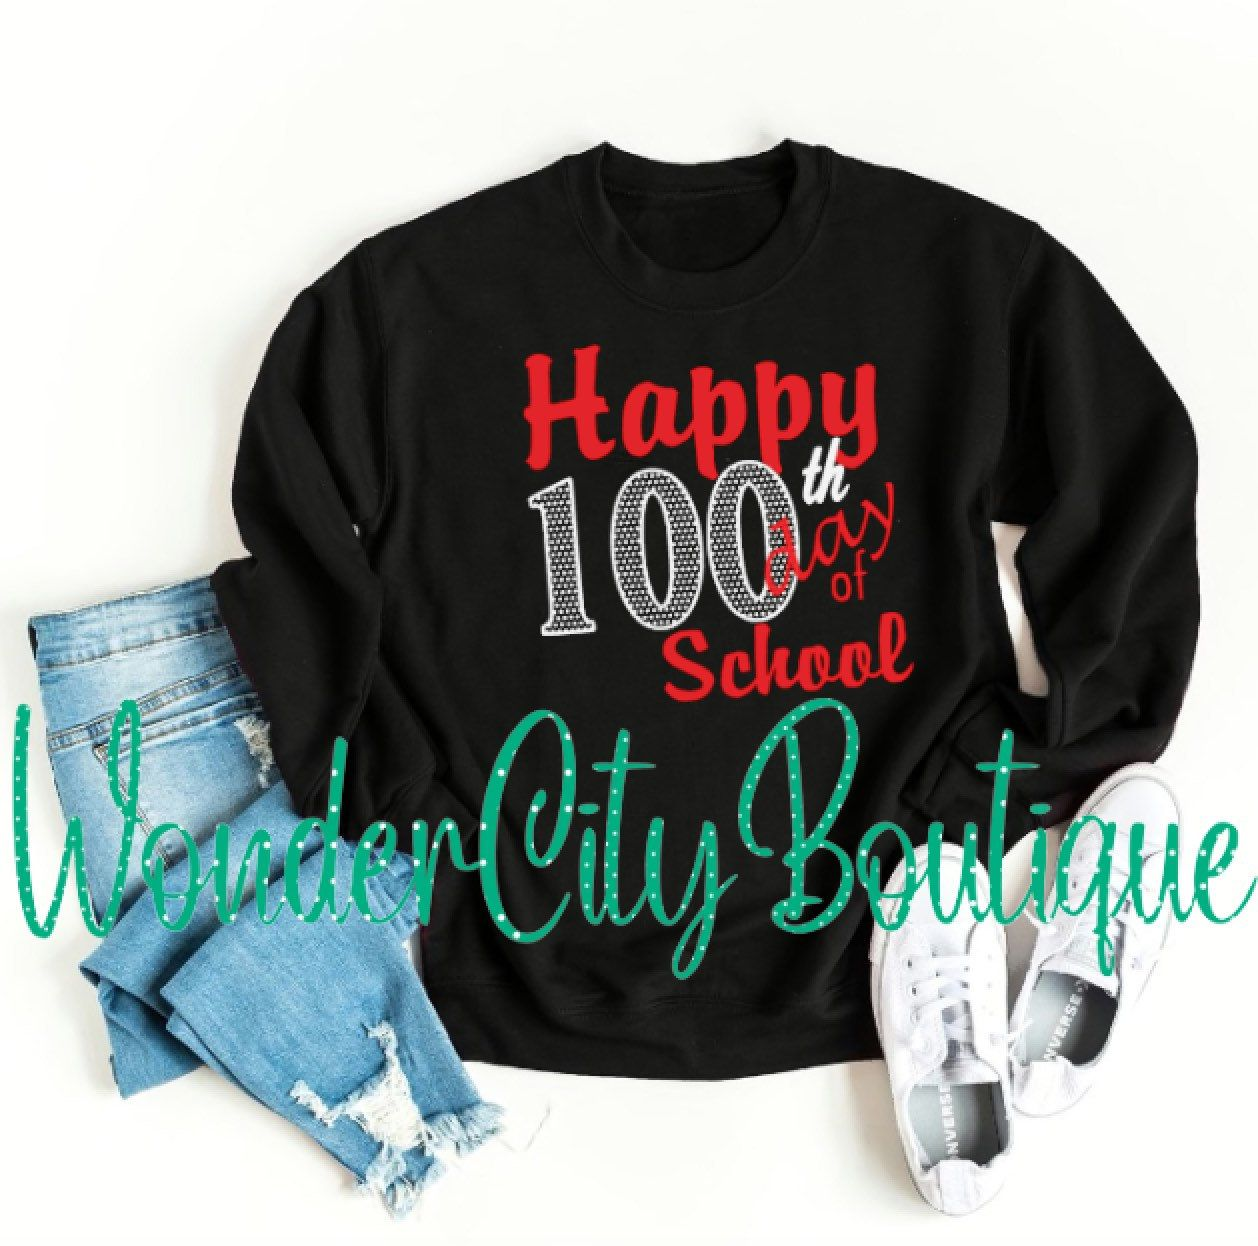 100th day, Happy 100th day of school, 100th day shirt,  100th day sweatshirt, 100th day teacher shirt #100thdayofschool